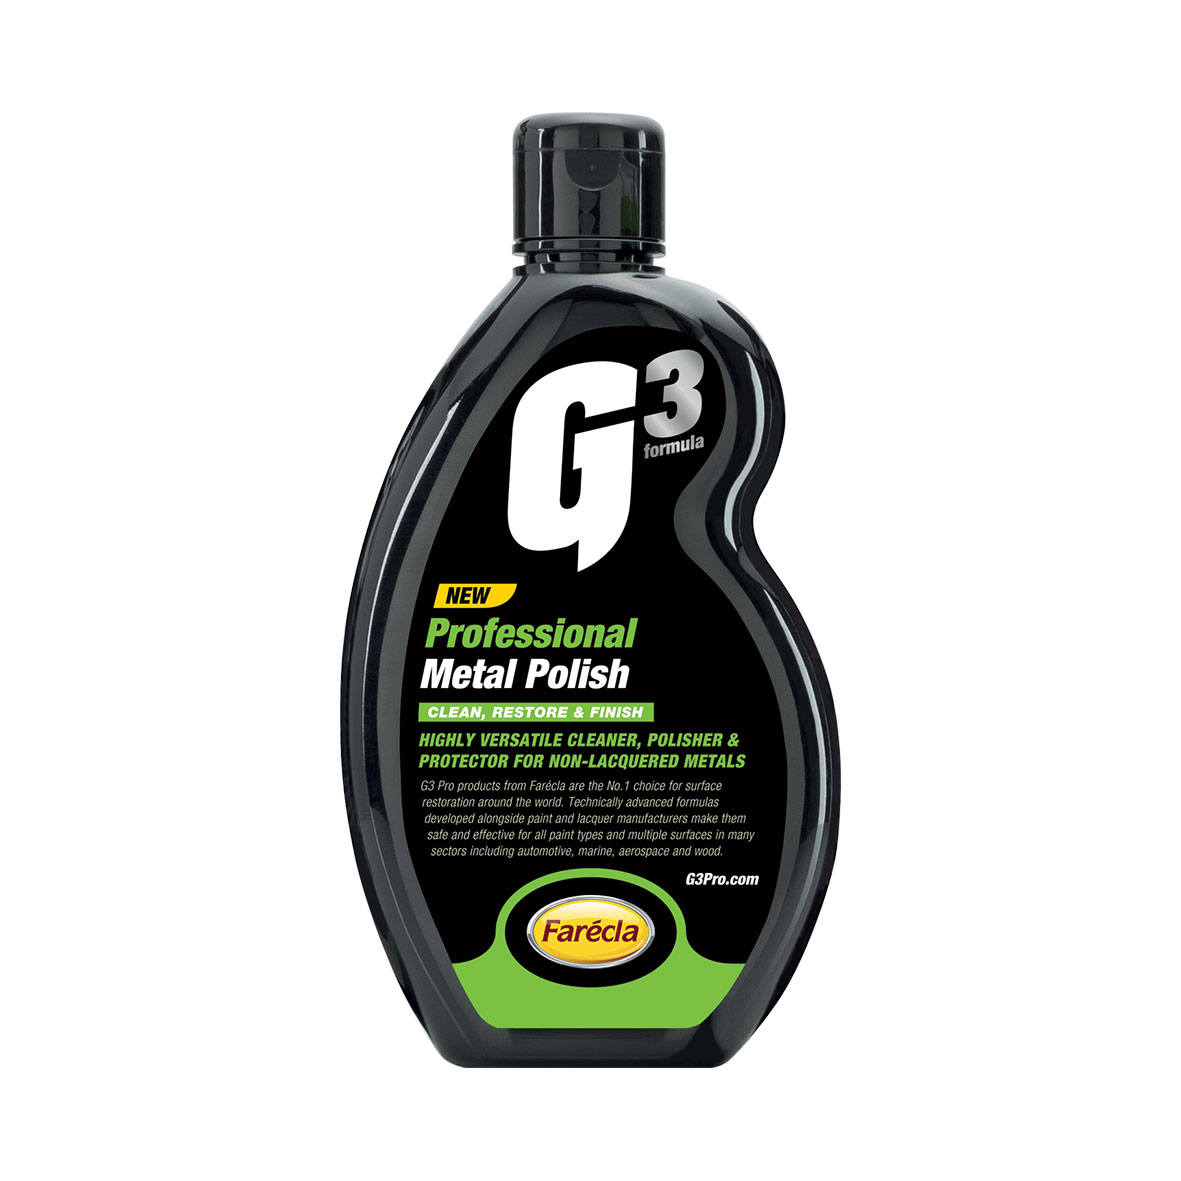 G3 Professional Metal Polish